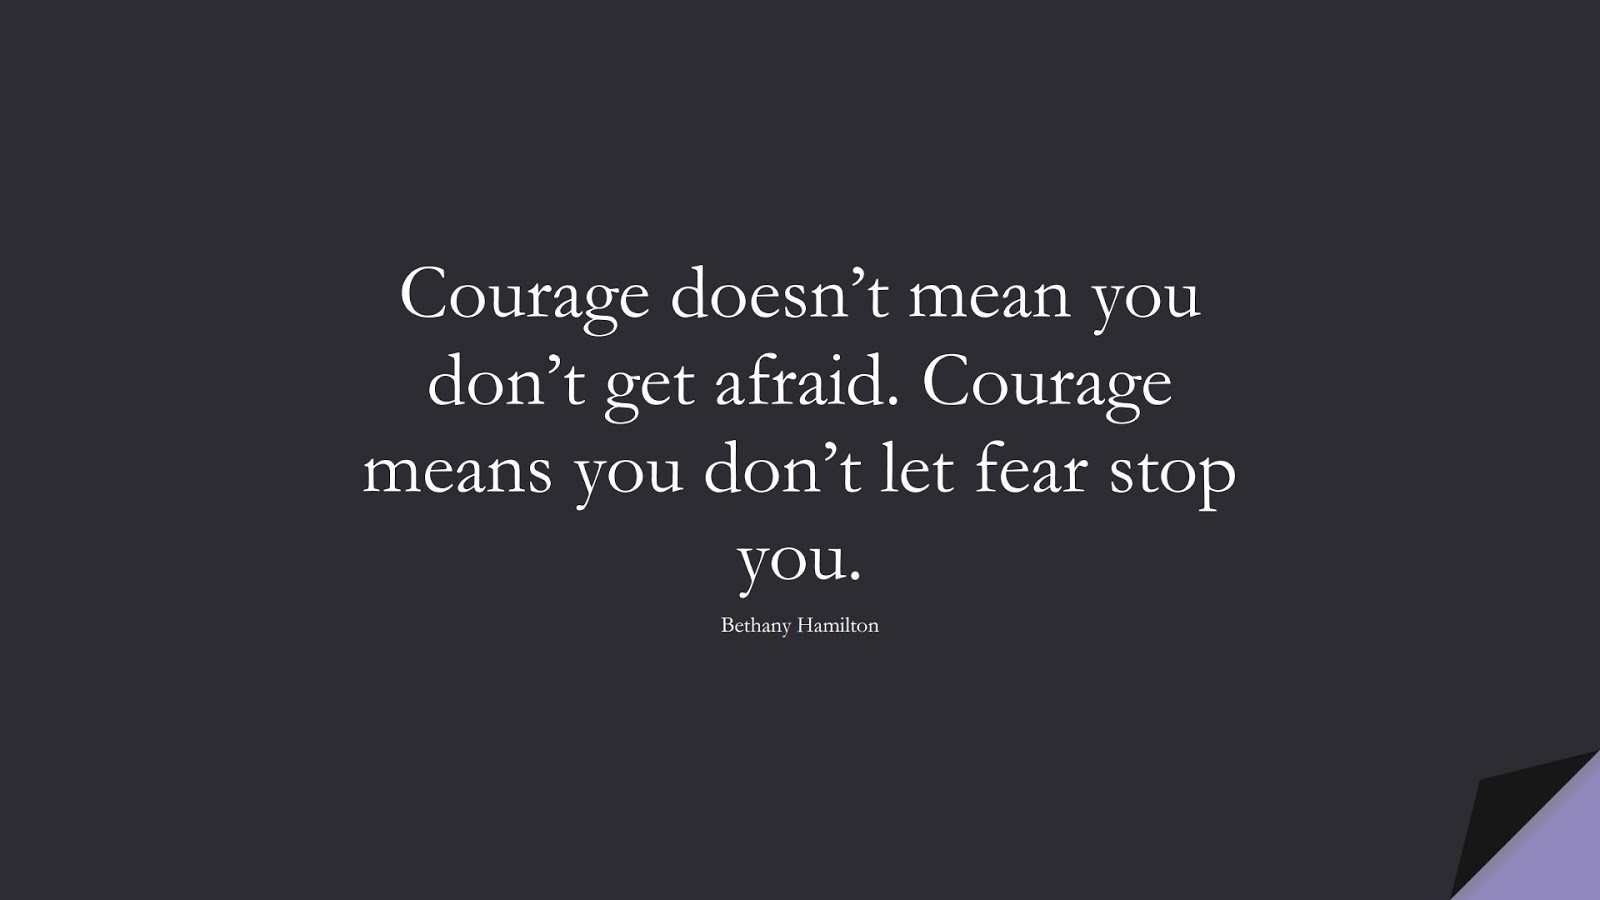 Courage doesn't mean you don't get afraid. Courage means you don't let fear stop you. (Bethany Hamilton);  #FearQuotes